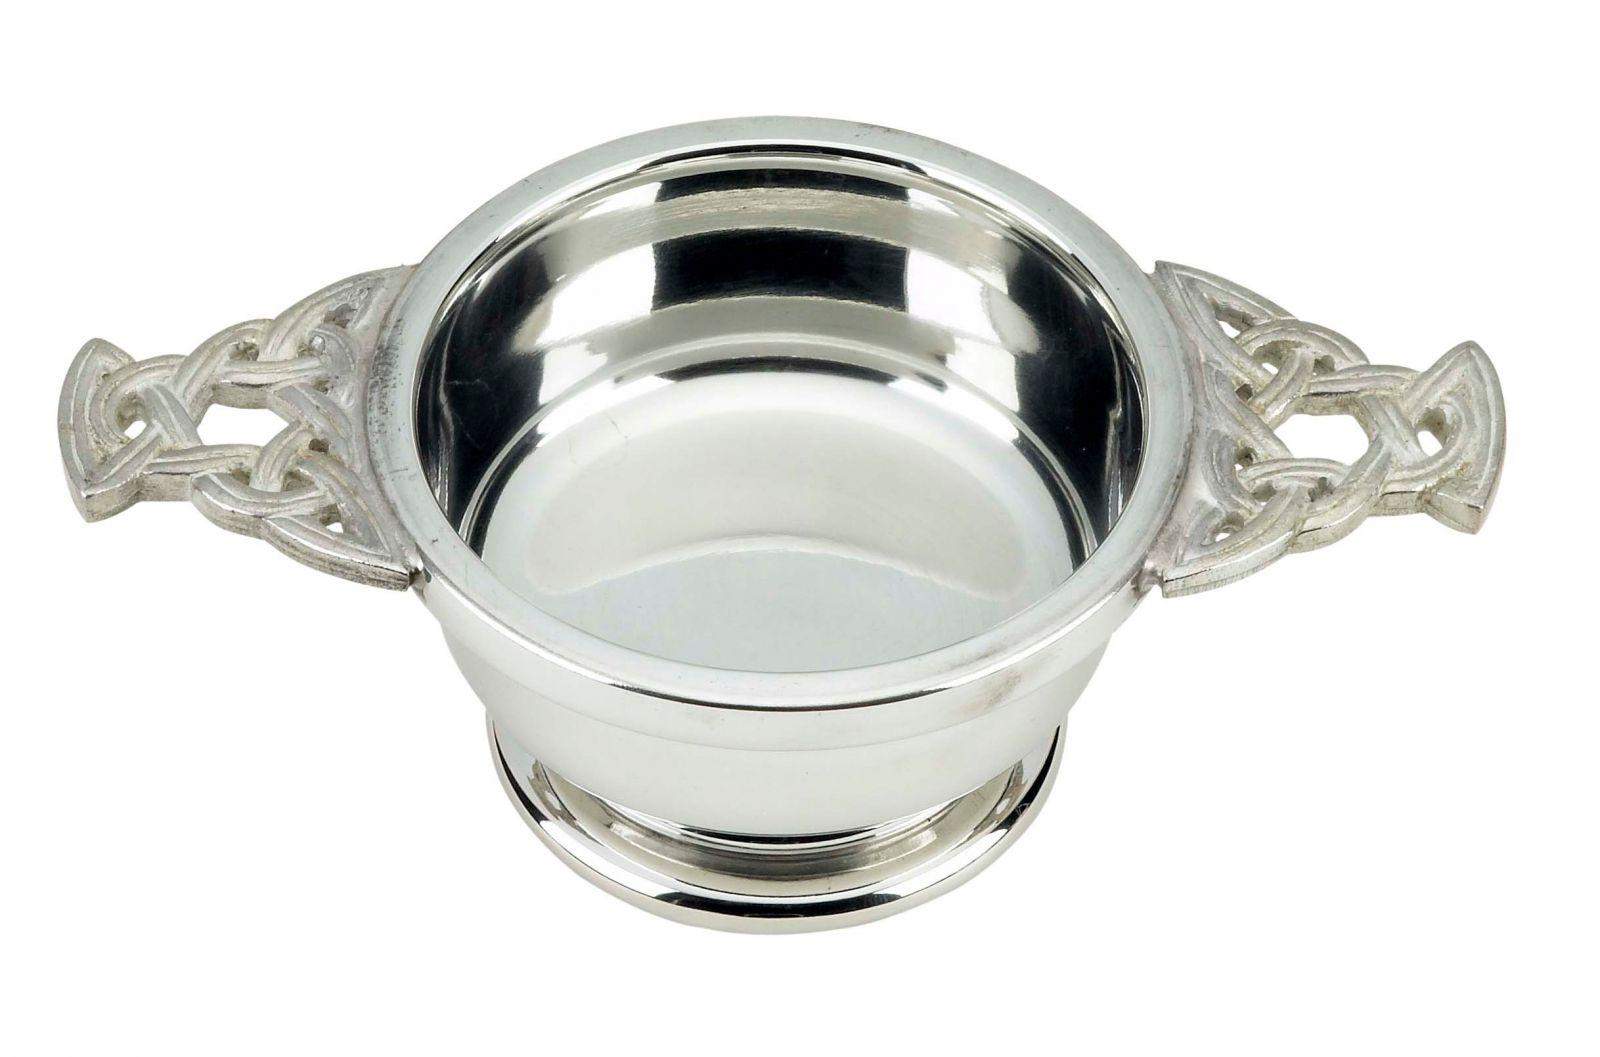 """Wedding Quaich Gifts: 2.75"""" To 6.5"""" Sizes, Engraved"""